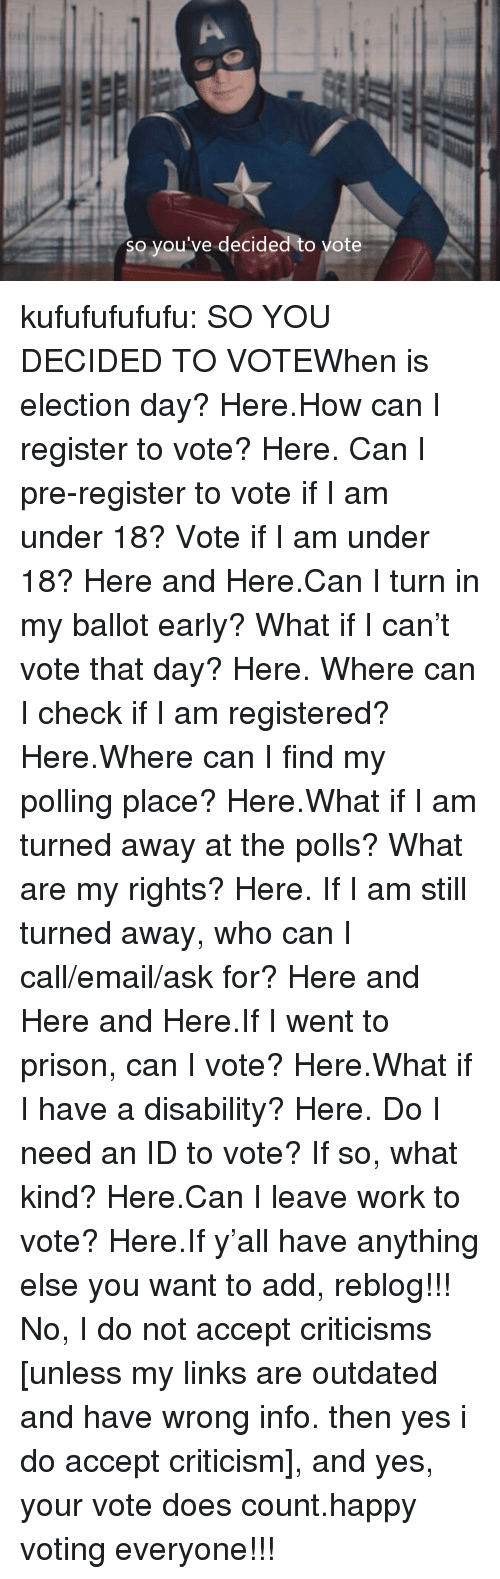 Aclu: so you've decided to vote kufufufufufu:  SO YOU DECIDED TO VOTEWhen is election day? Here.How can I register to vote? Here. Can I pre-register to vote if I am under 18? Vote if I am under 18? Here and Here.Can I turn in my ballot early? What if I can't vote that day? Here. Where can I check if I am registered? Here.Where can I find my polling place? Here.What if I am turned away at the polls? What are my rights? Here. If I am still turned away, who can I call/email/ask for? Here and Here and Here.If I went to prison, can I vote? Here.What if I have a disability? Here. Do I need an ID to vote? If so, what kind? Here.Can I leave work to vote? Here.If y'all have anything else you want to add, reblog!!! No, I do not accept criticisms [unless my links are outdated and have wrong info. then yes i do accept criticism], and yes, your vote does count.happy voting everyone!!!